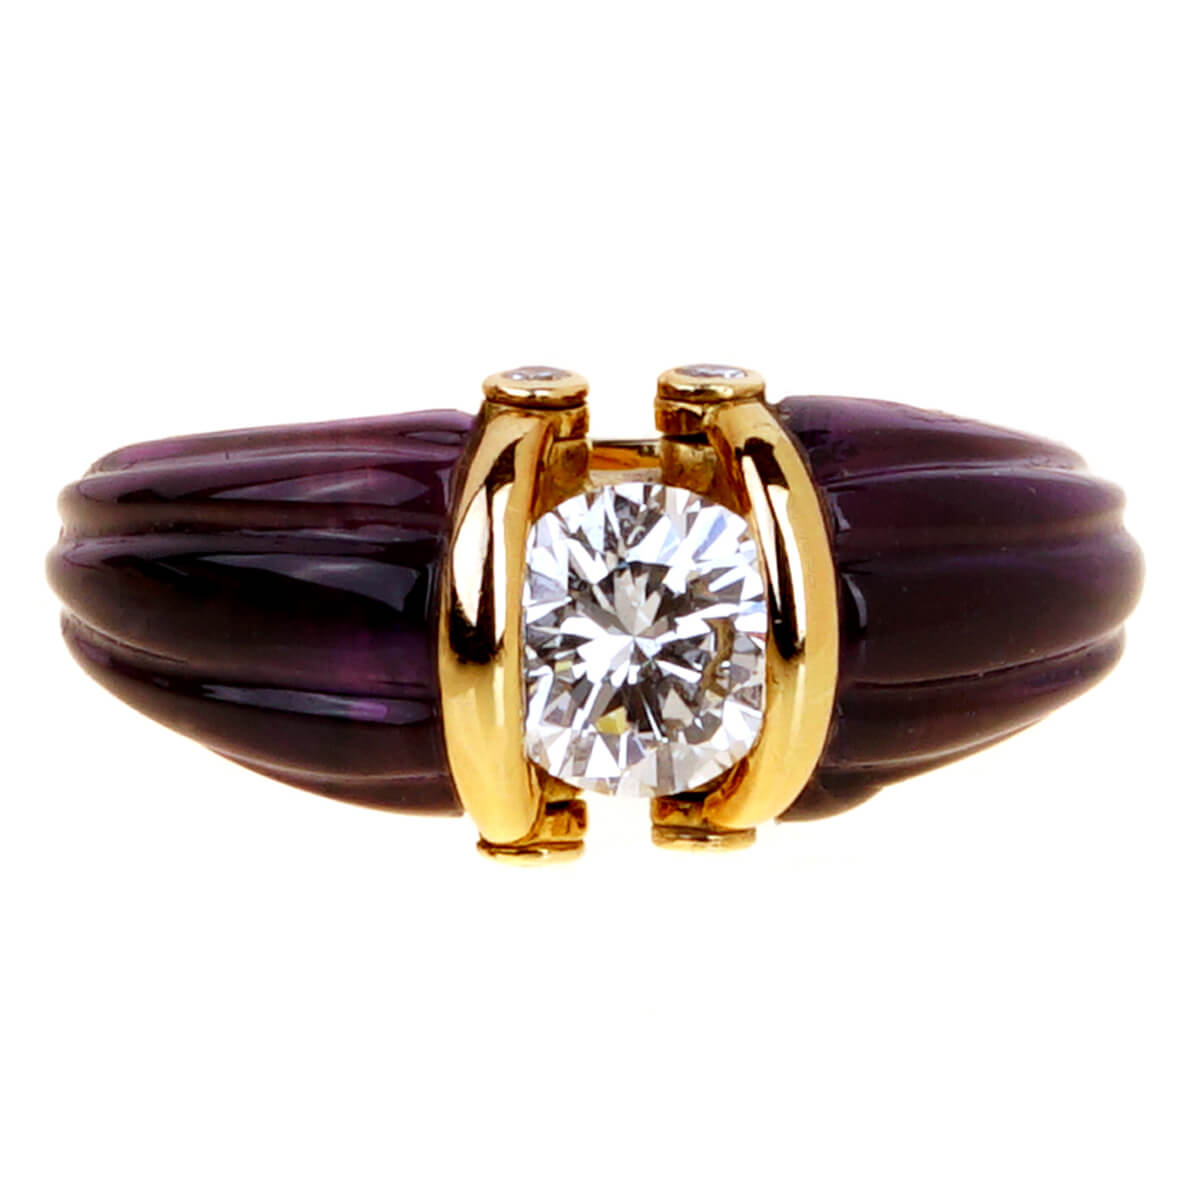 Dior Carved Amethyst Diamond Solitaire Ring